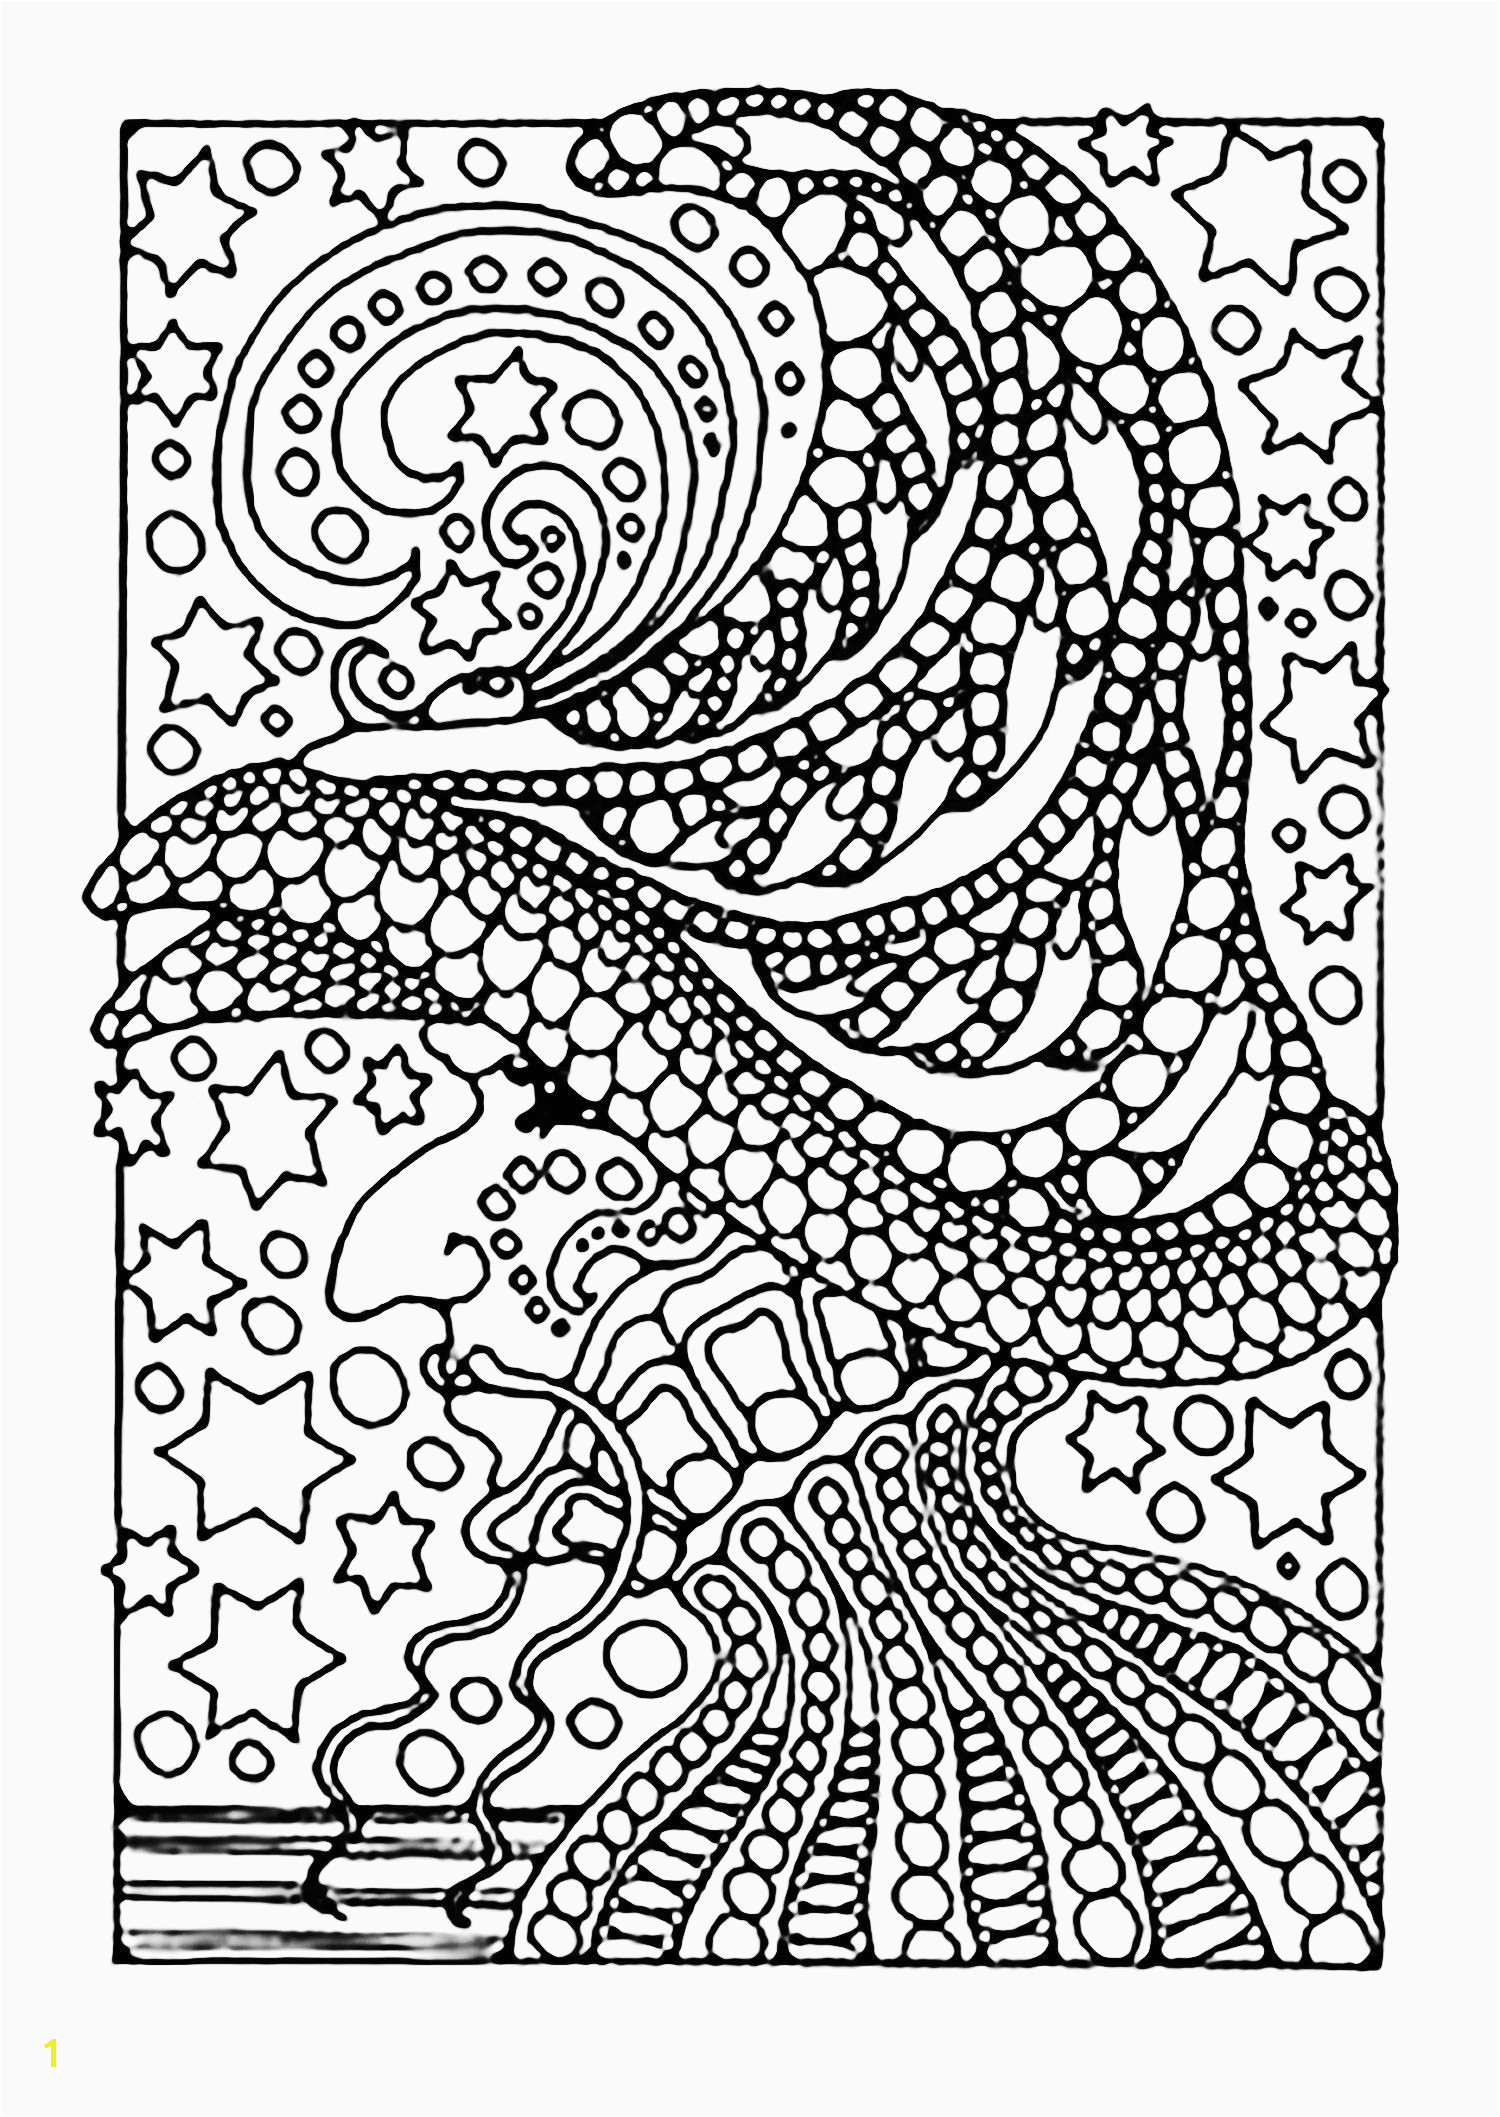 Spider Coloring Pages Free and Printable Coloring Pages Lovely Book Coloring Pages Best sol R